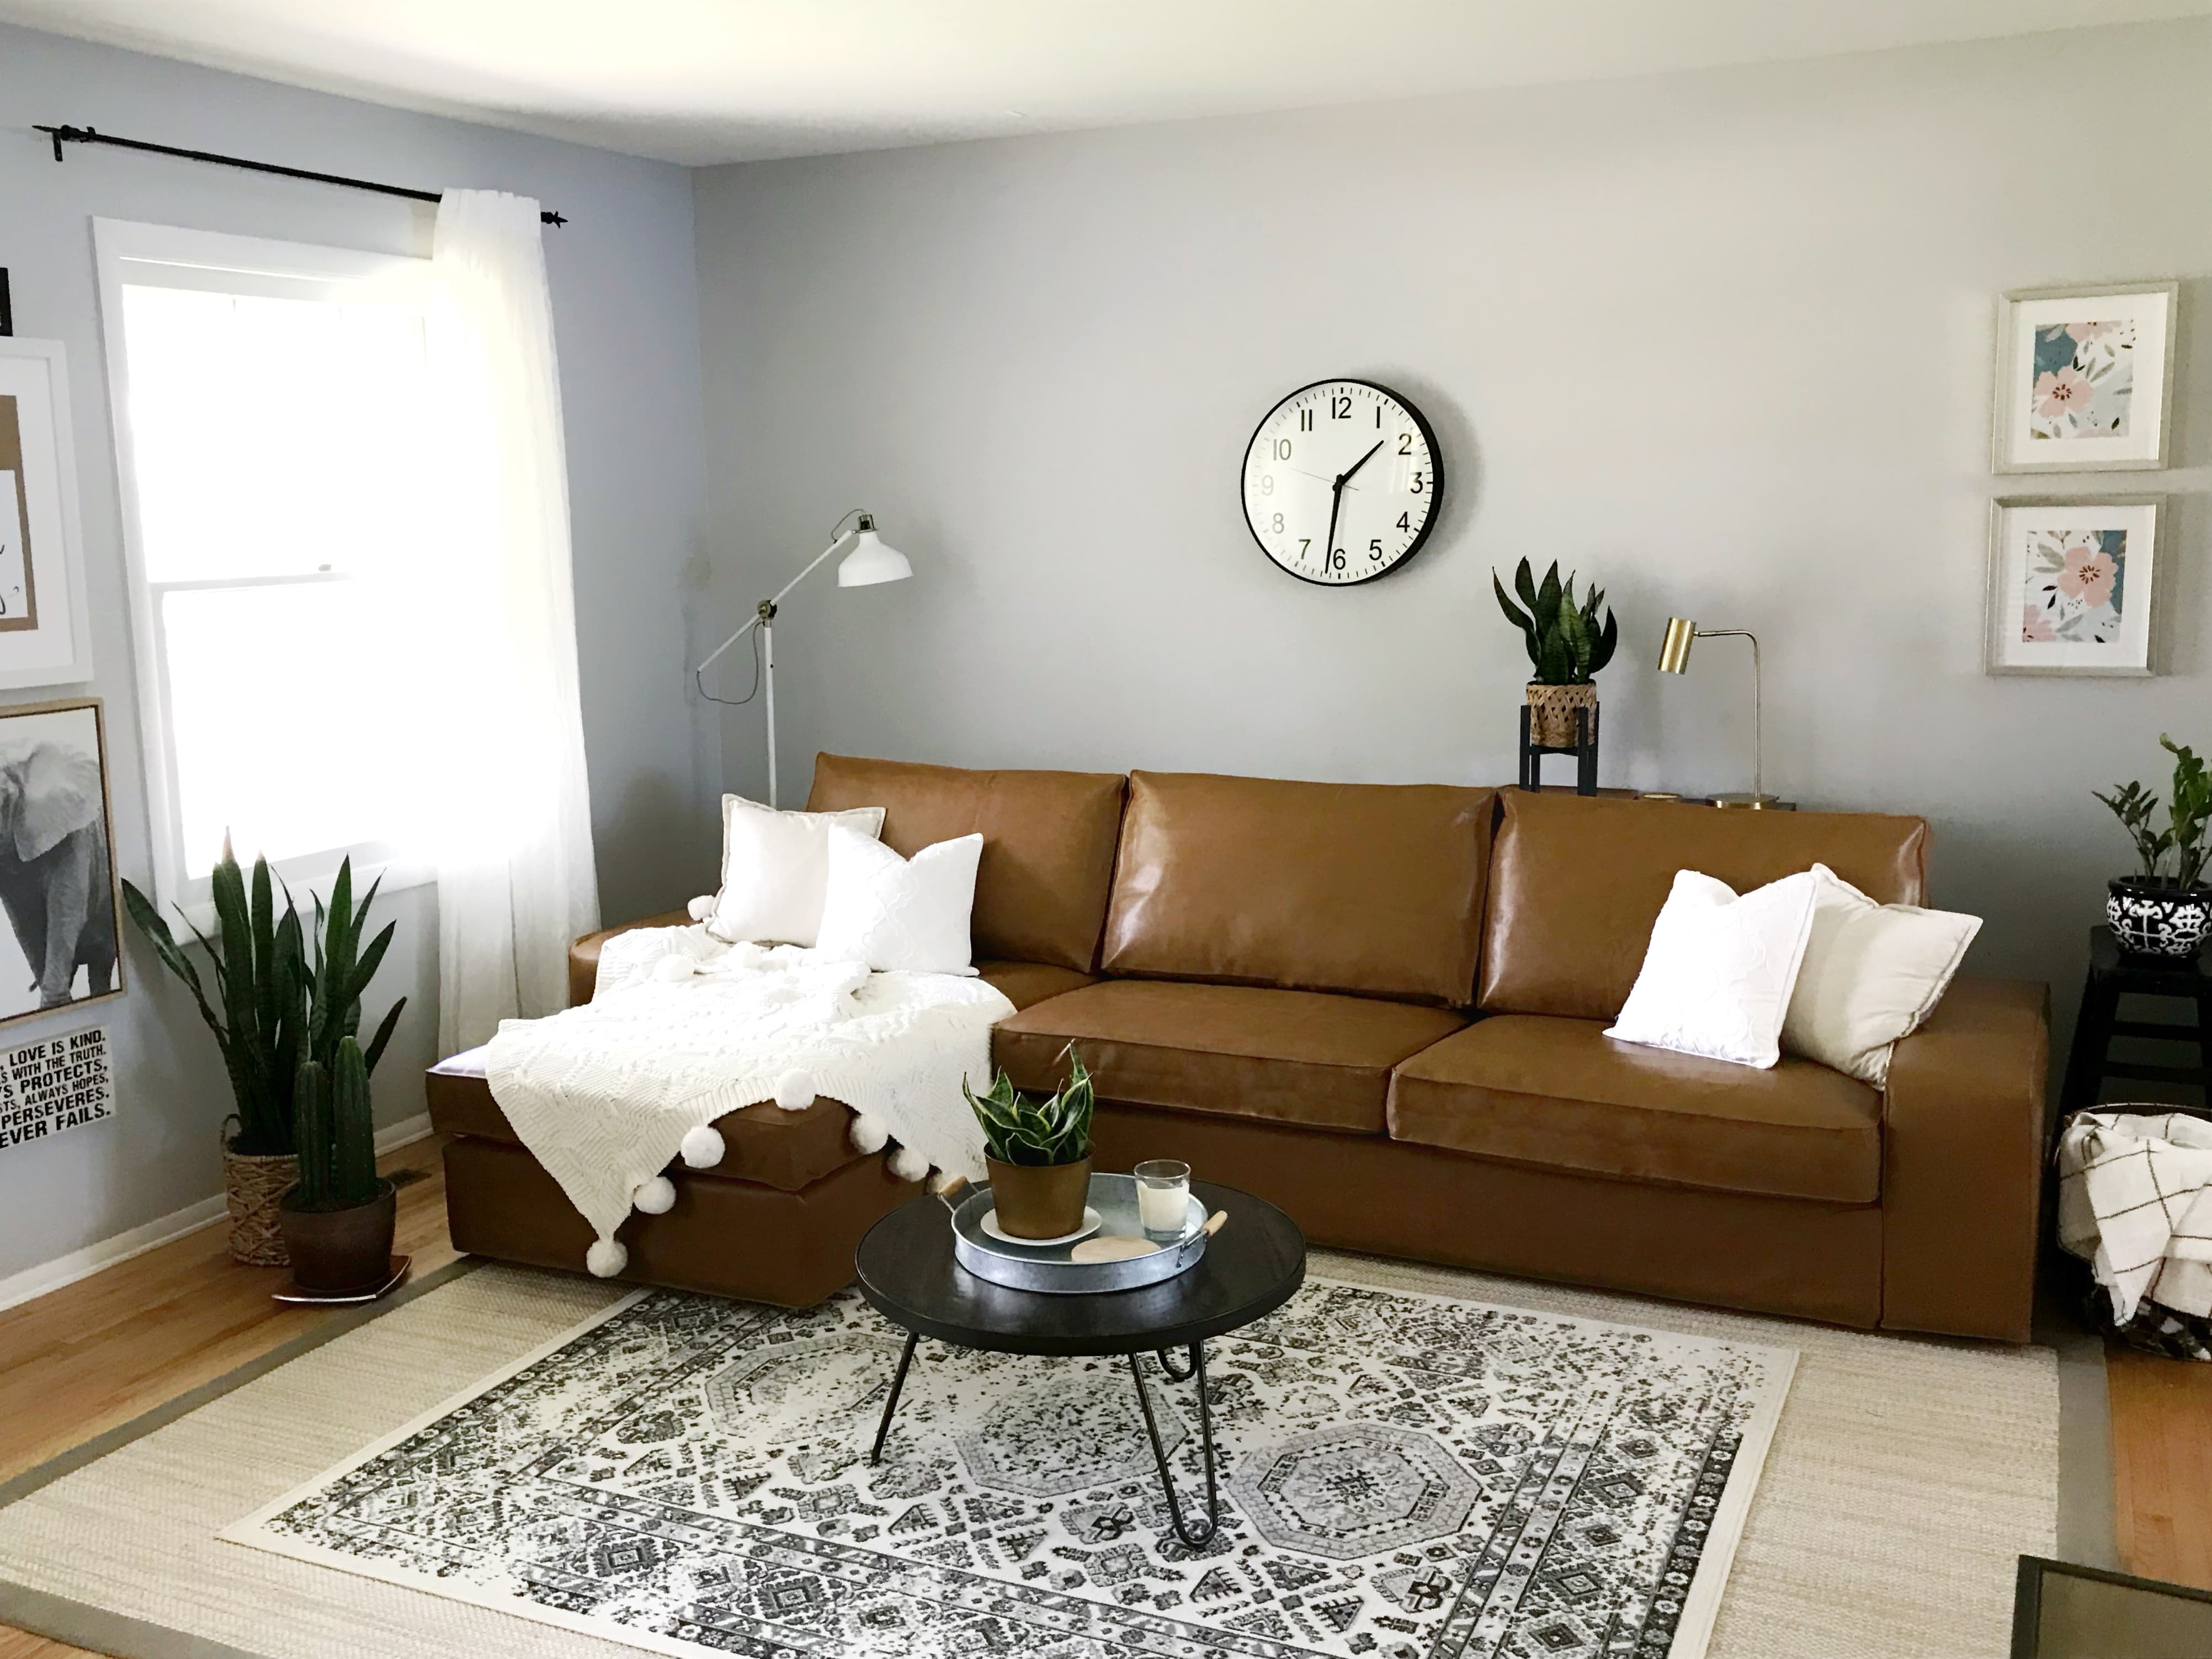 custom ikea covers - kivik leather slipcover